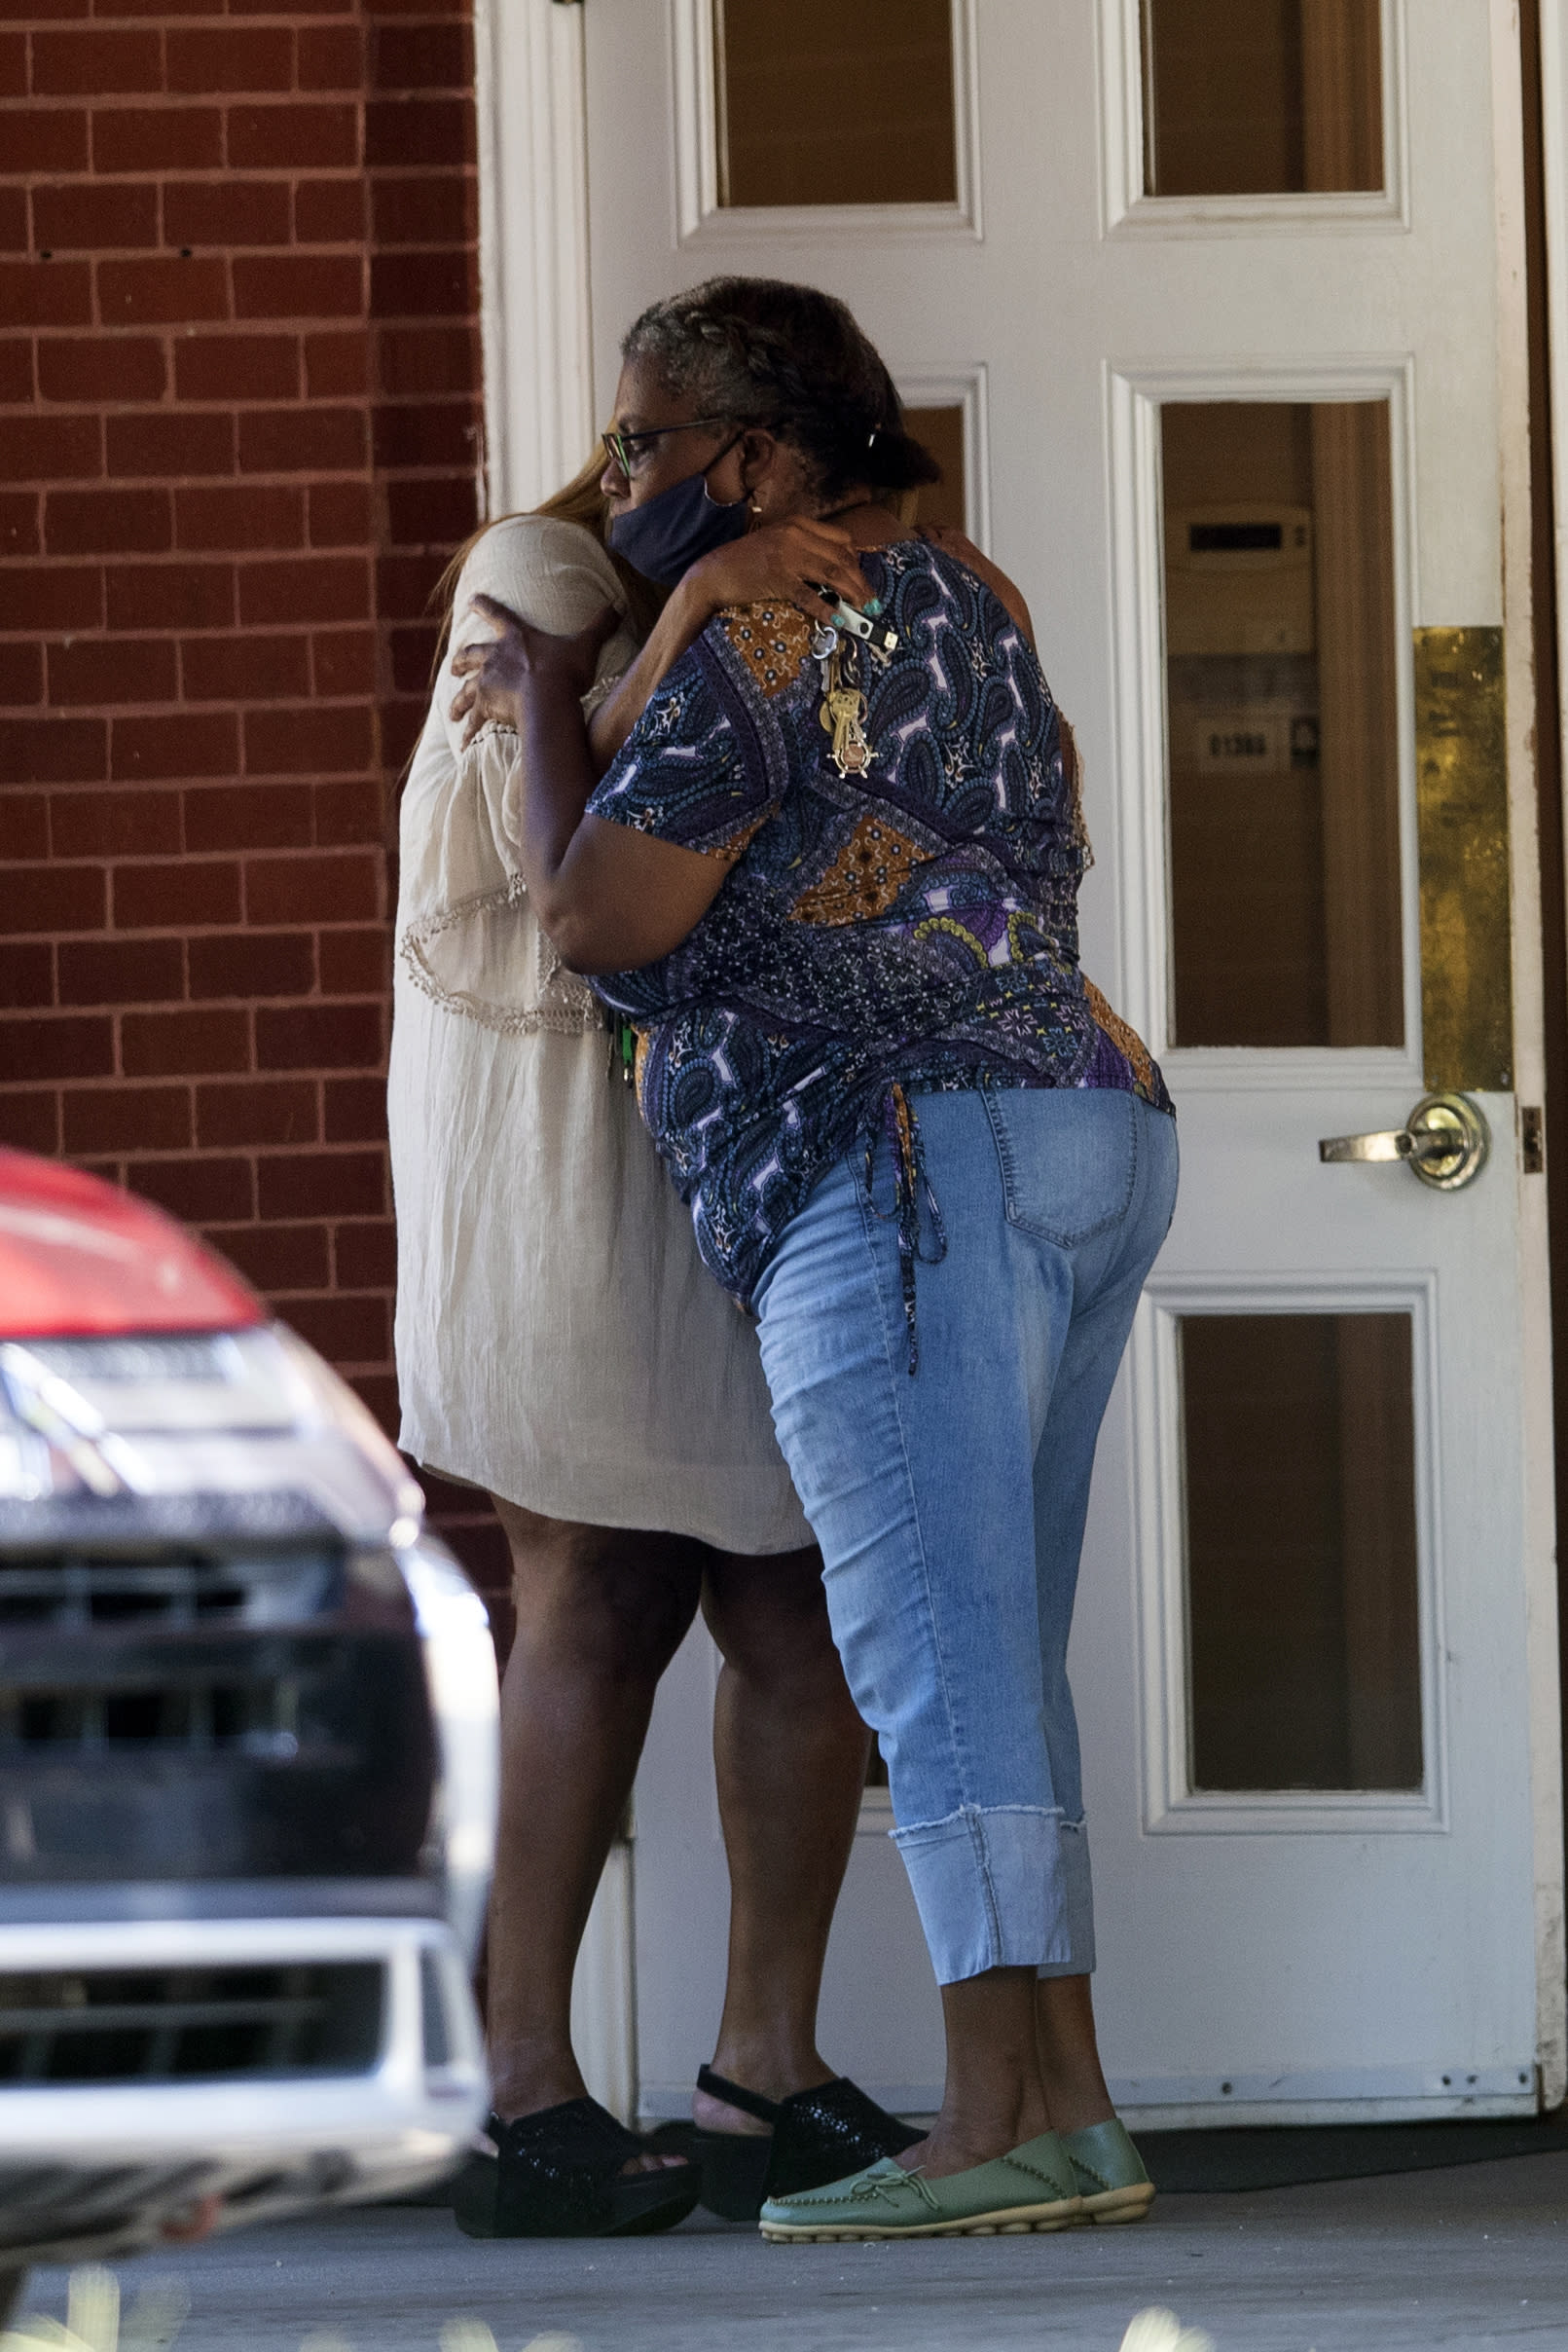 Two women embrace outside a viewing for 8-year-old Secoriea Turner, who was fatally shot in Atlanta on July 4th near the Wendy's site where Rayshard Brooks was killed the previous month Tuesday, July 14, 2020, in South Fulton, Ga. (AP Photo/John Bazemore)